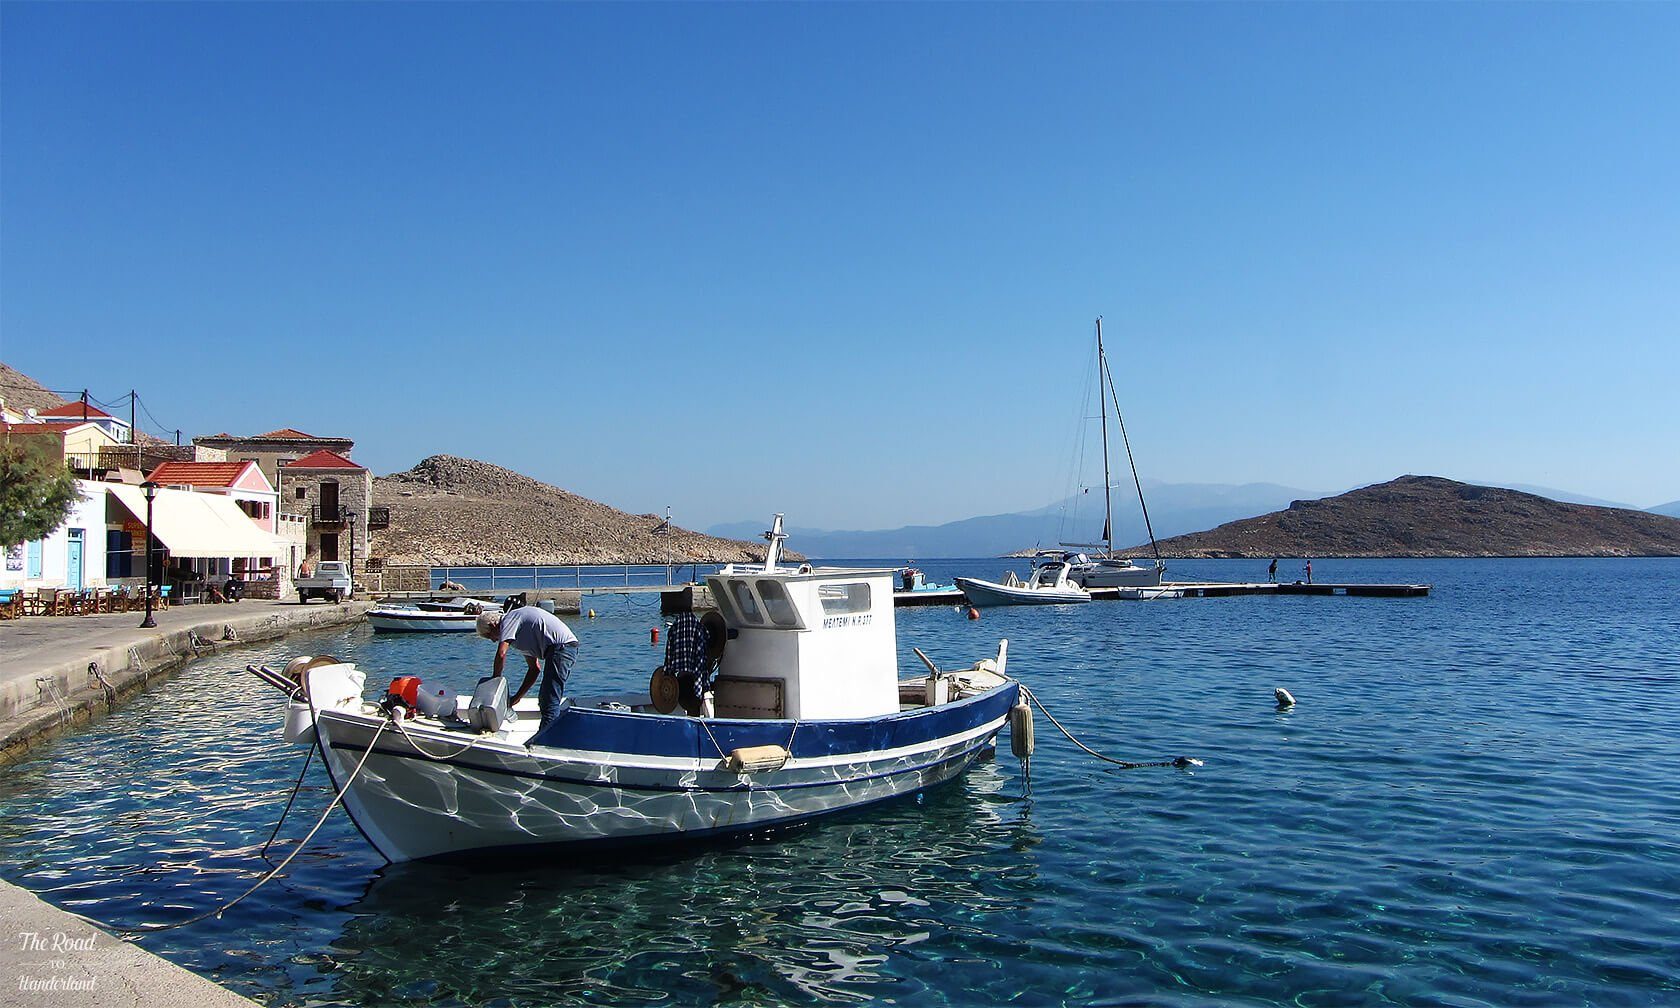 Fisherman pottering on his boat in Halki harbour